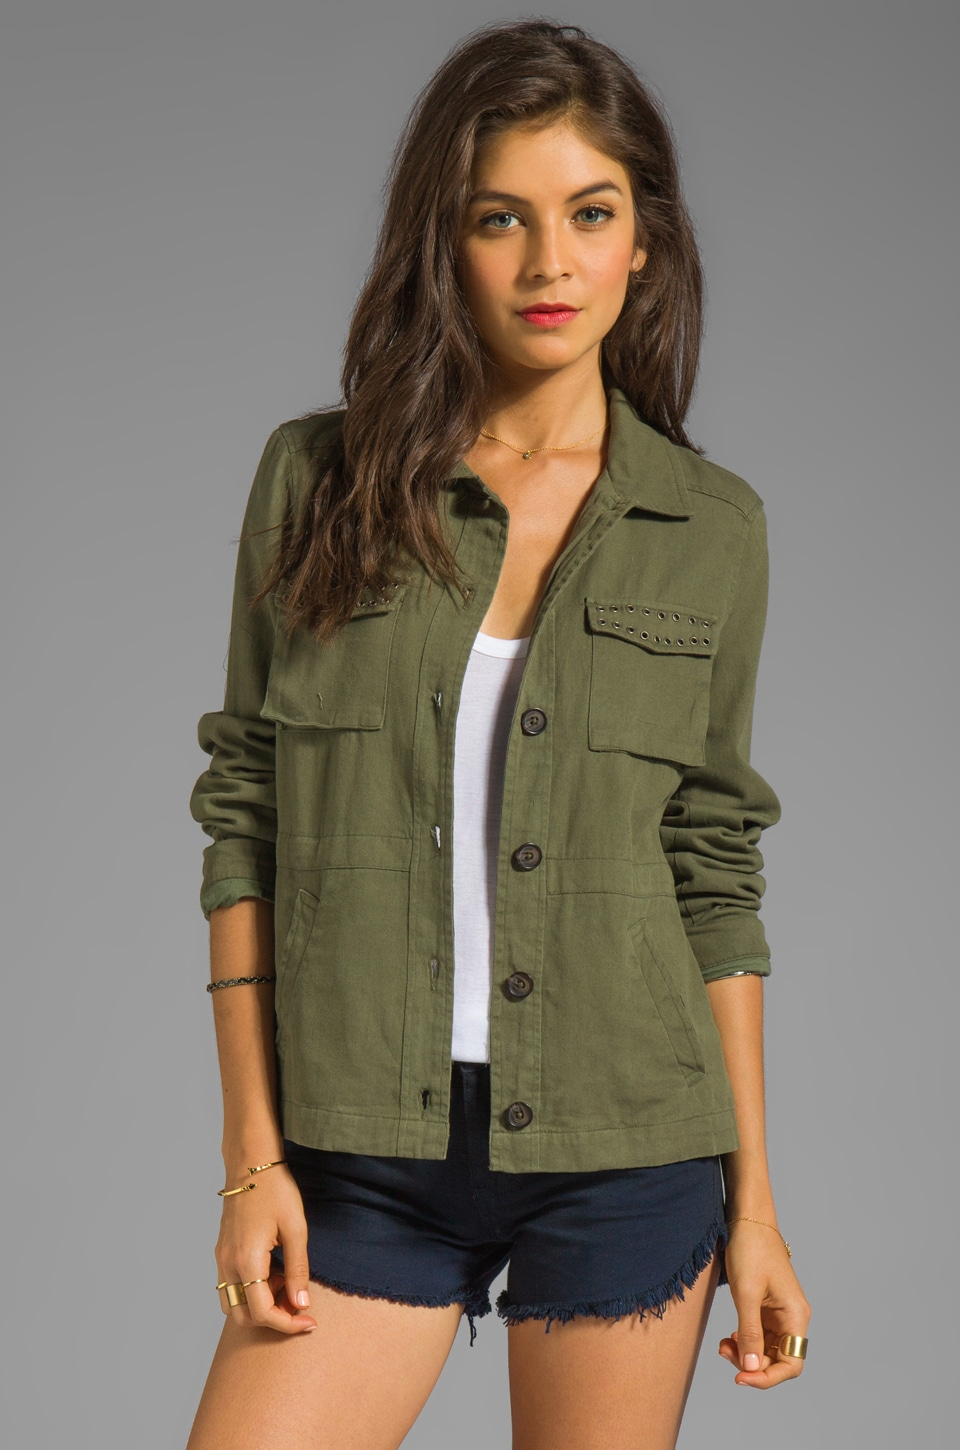 Joie Jatara Twill Jacket in New Army